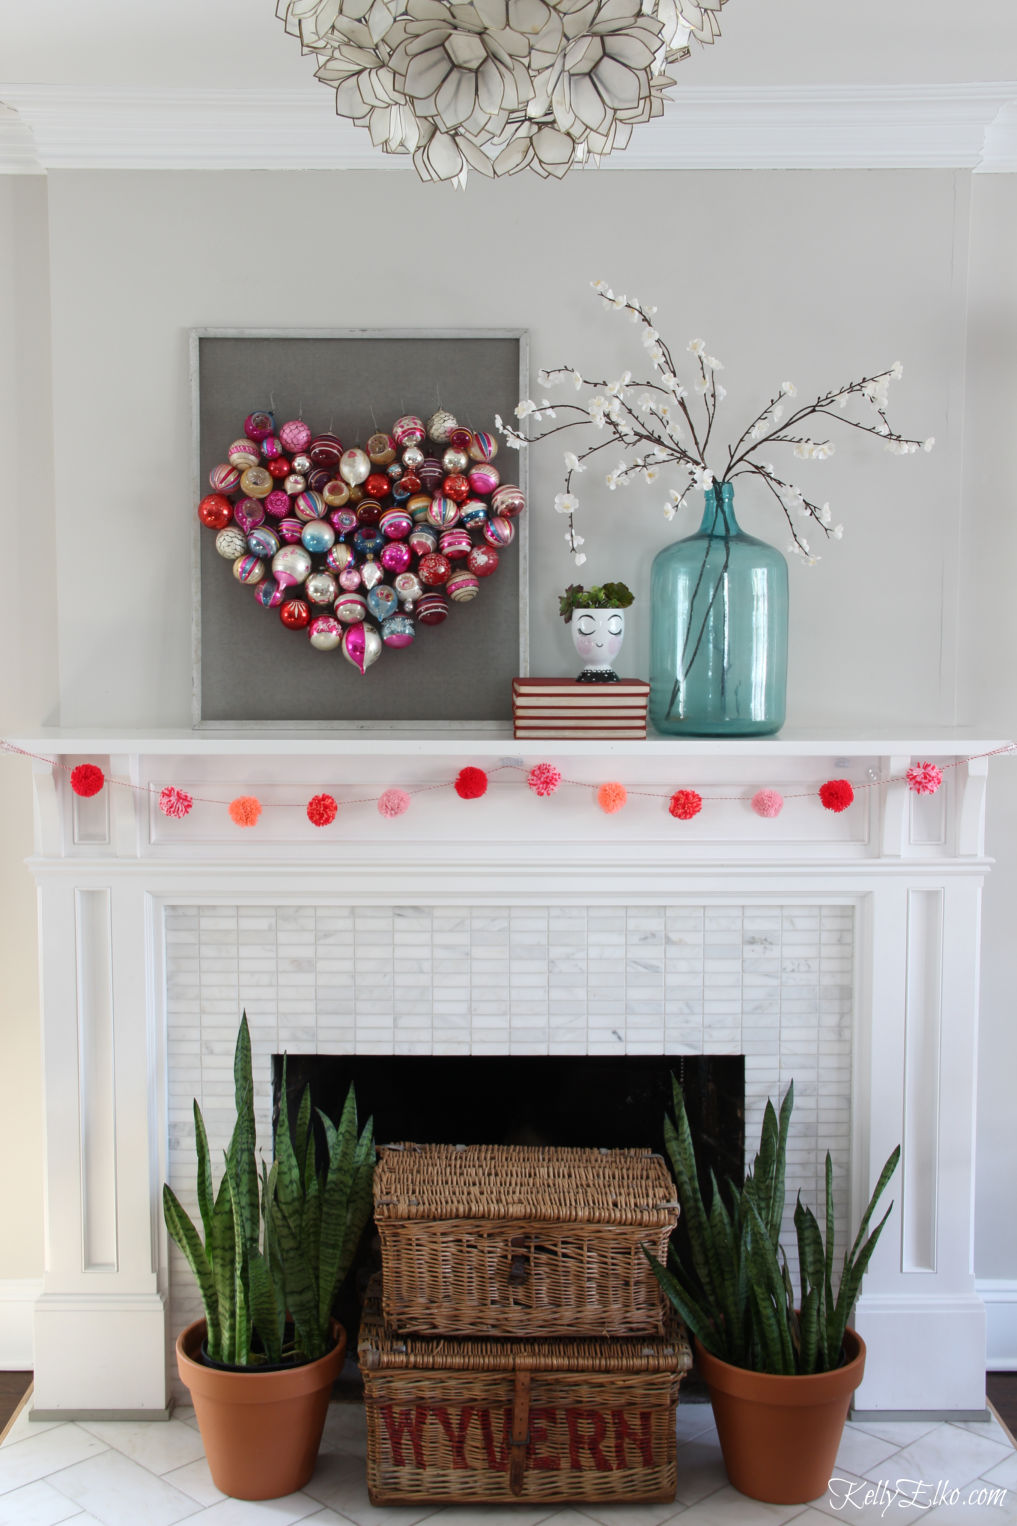 Beautiful spring mantel with a heart made out of vintage Christmas ornaments! kellyelko.com #mantel #manteldecor #springmantel #valentinesday #valentine #valentinesdecor #springdecor #fireplacedecor #shinybrites #christmasornaments #diydecor